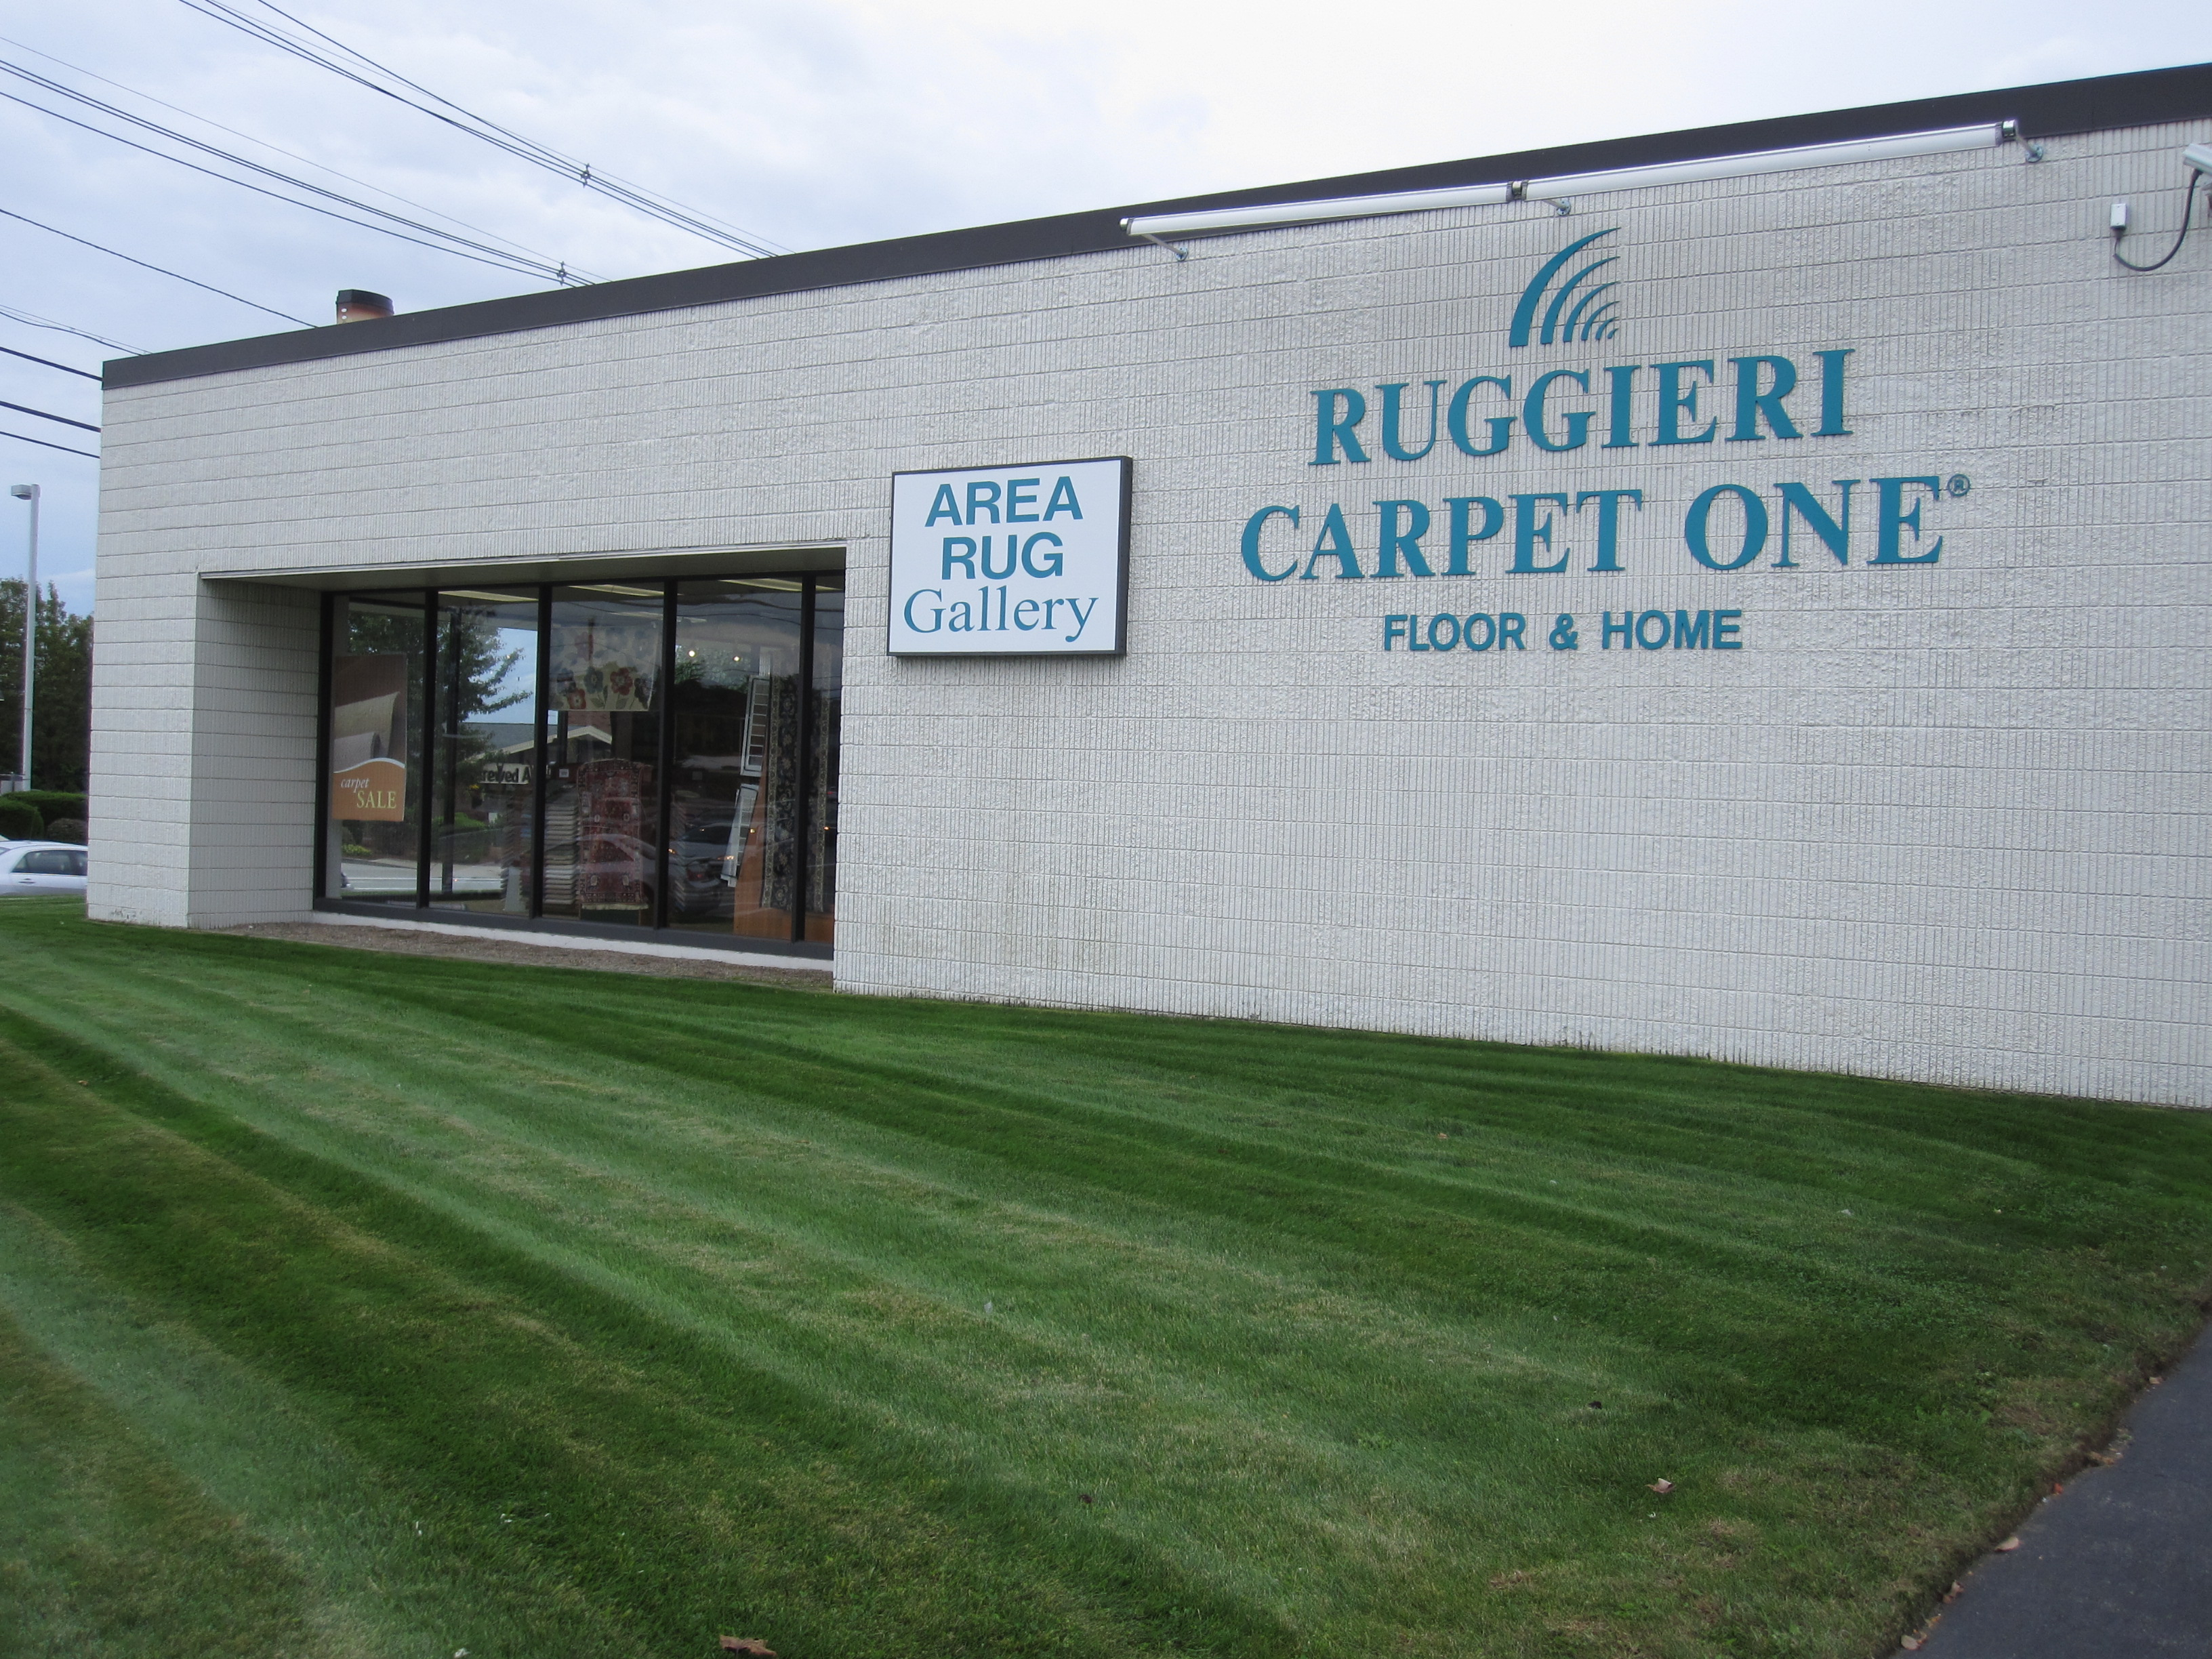 Carpet One Nutley NJ 07110